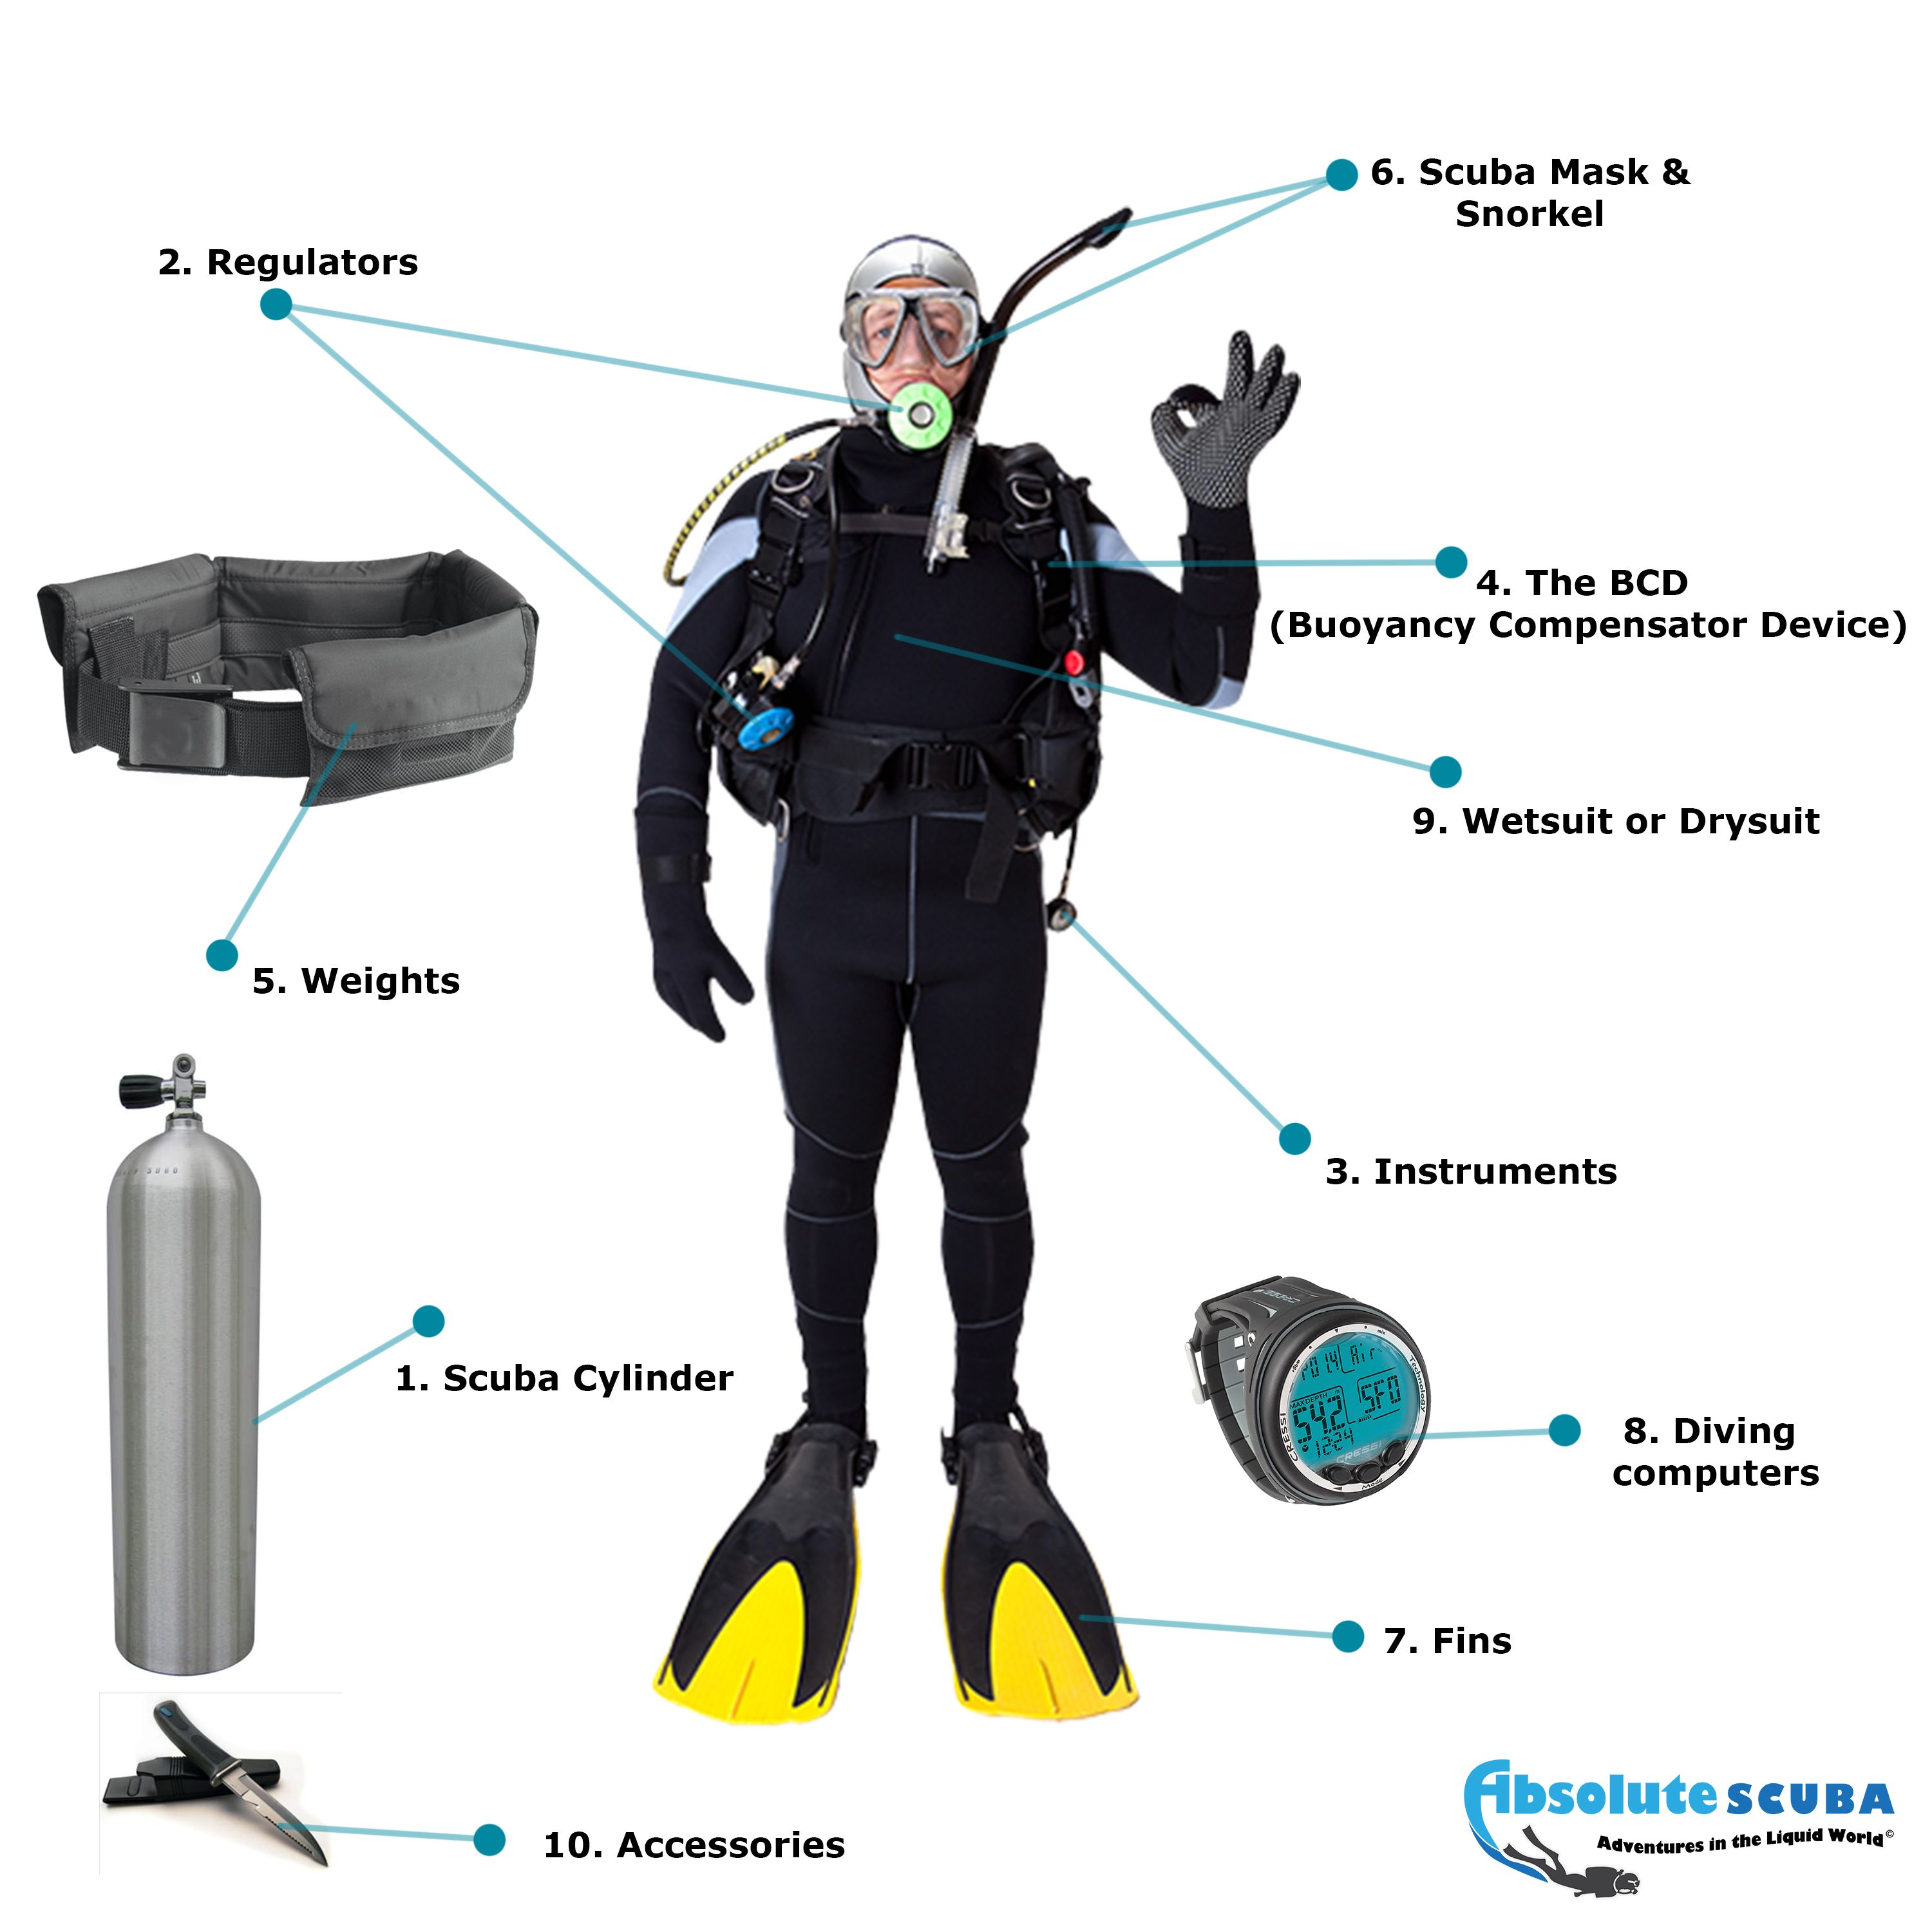 For An Avid Water Sports Enthusiast What Does The Mask